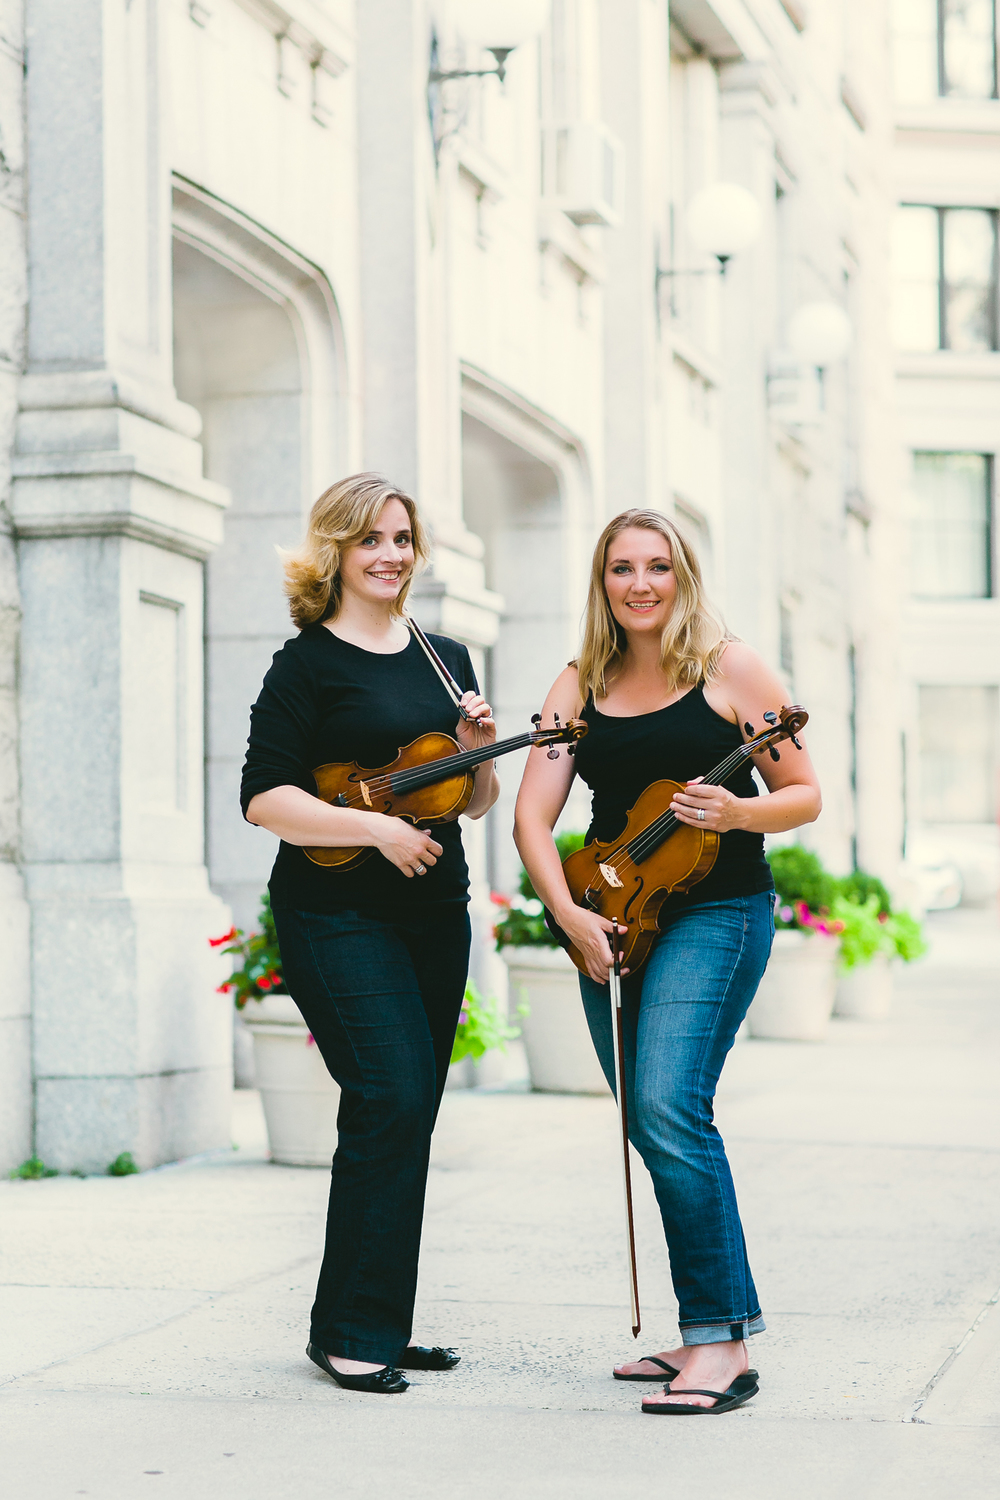 Kimberly Musial (viola) and Stephanie Merten (violin)